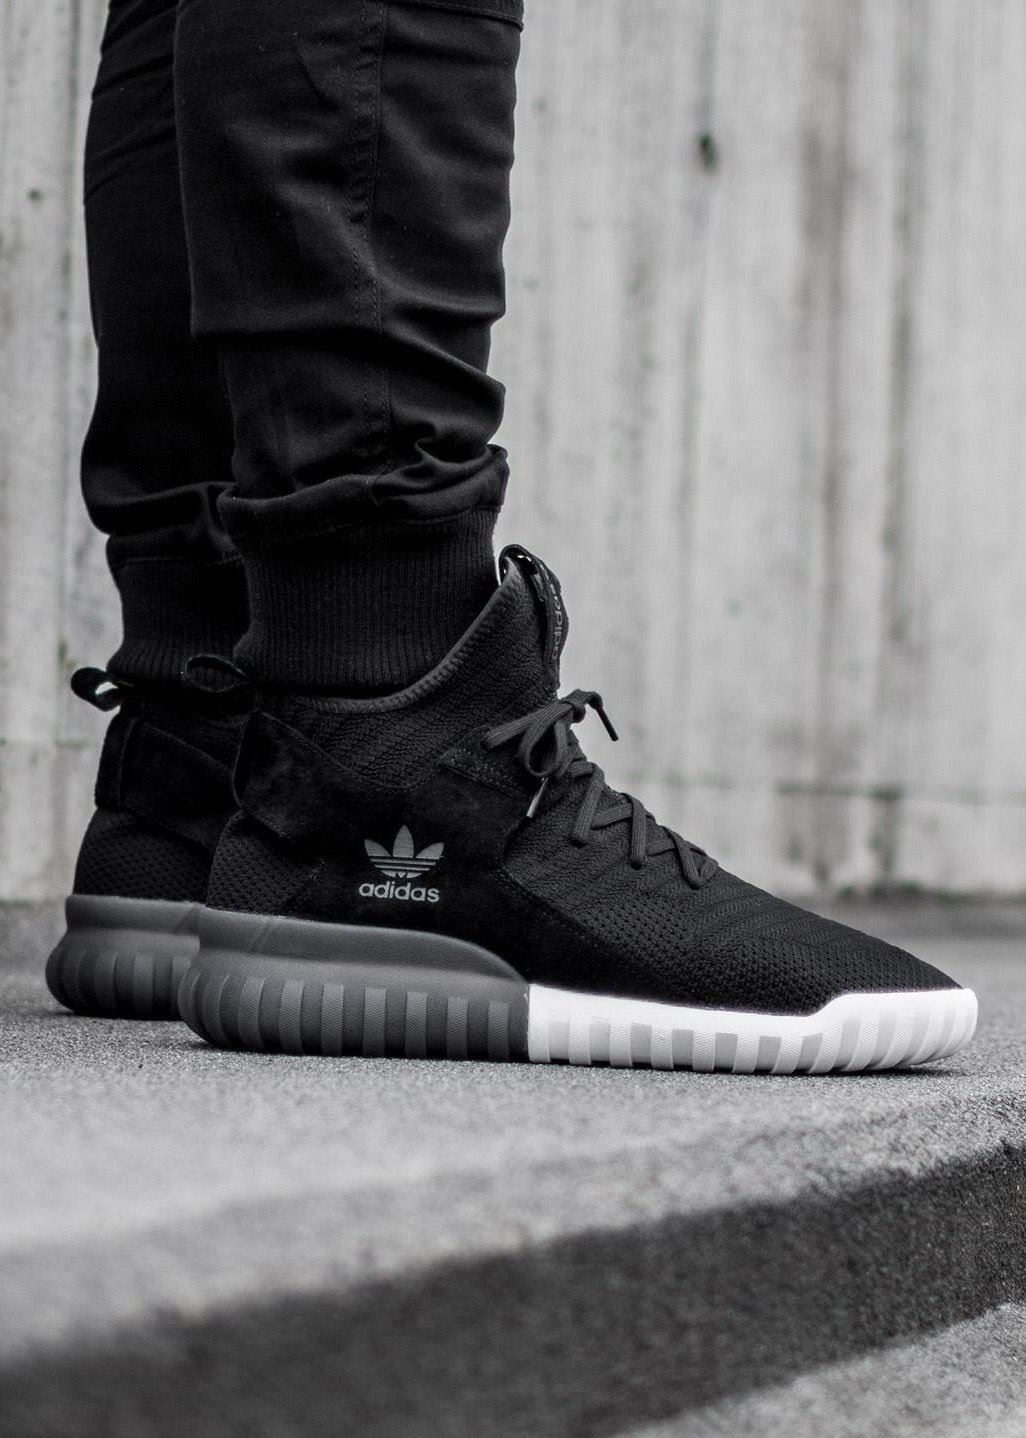 official photos 86562 16392 adidas Originals Tubular X Primeknit  Follow filetlondon see more street  wear…